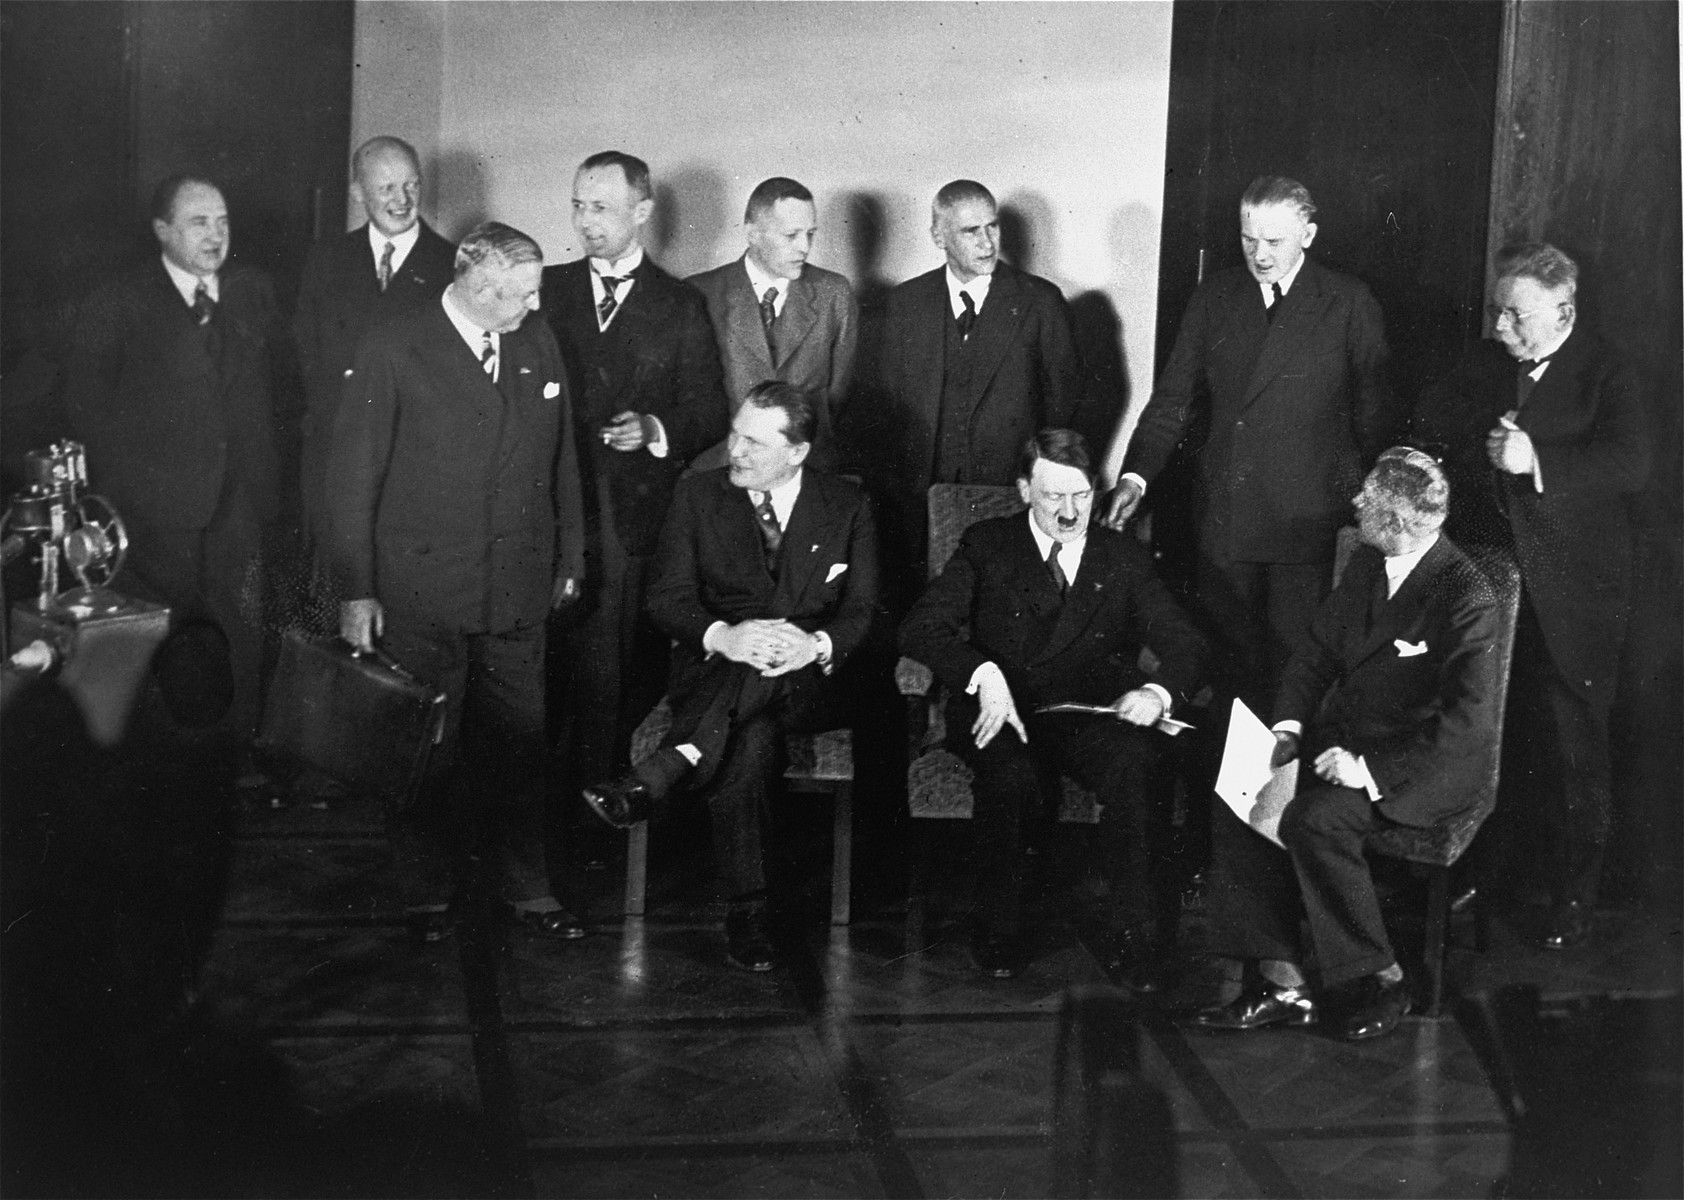 Adolf Hitler poses with members of his first cabinet in the chancellery.  Standing (from left to right): Walther Funk, Hans Heinrich Lammers, Walther Darre, unidentified, unidenrified, Wilhelm Frick, unidentified, unidentified.  Sitting (left to right): Hermann Goering, Adolf Hitler, and Fritz von Papen.